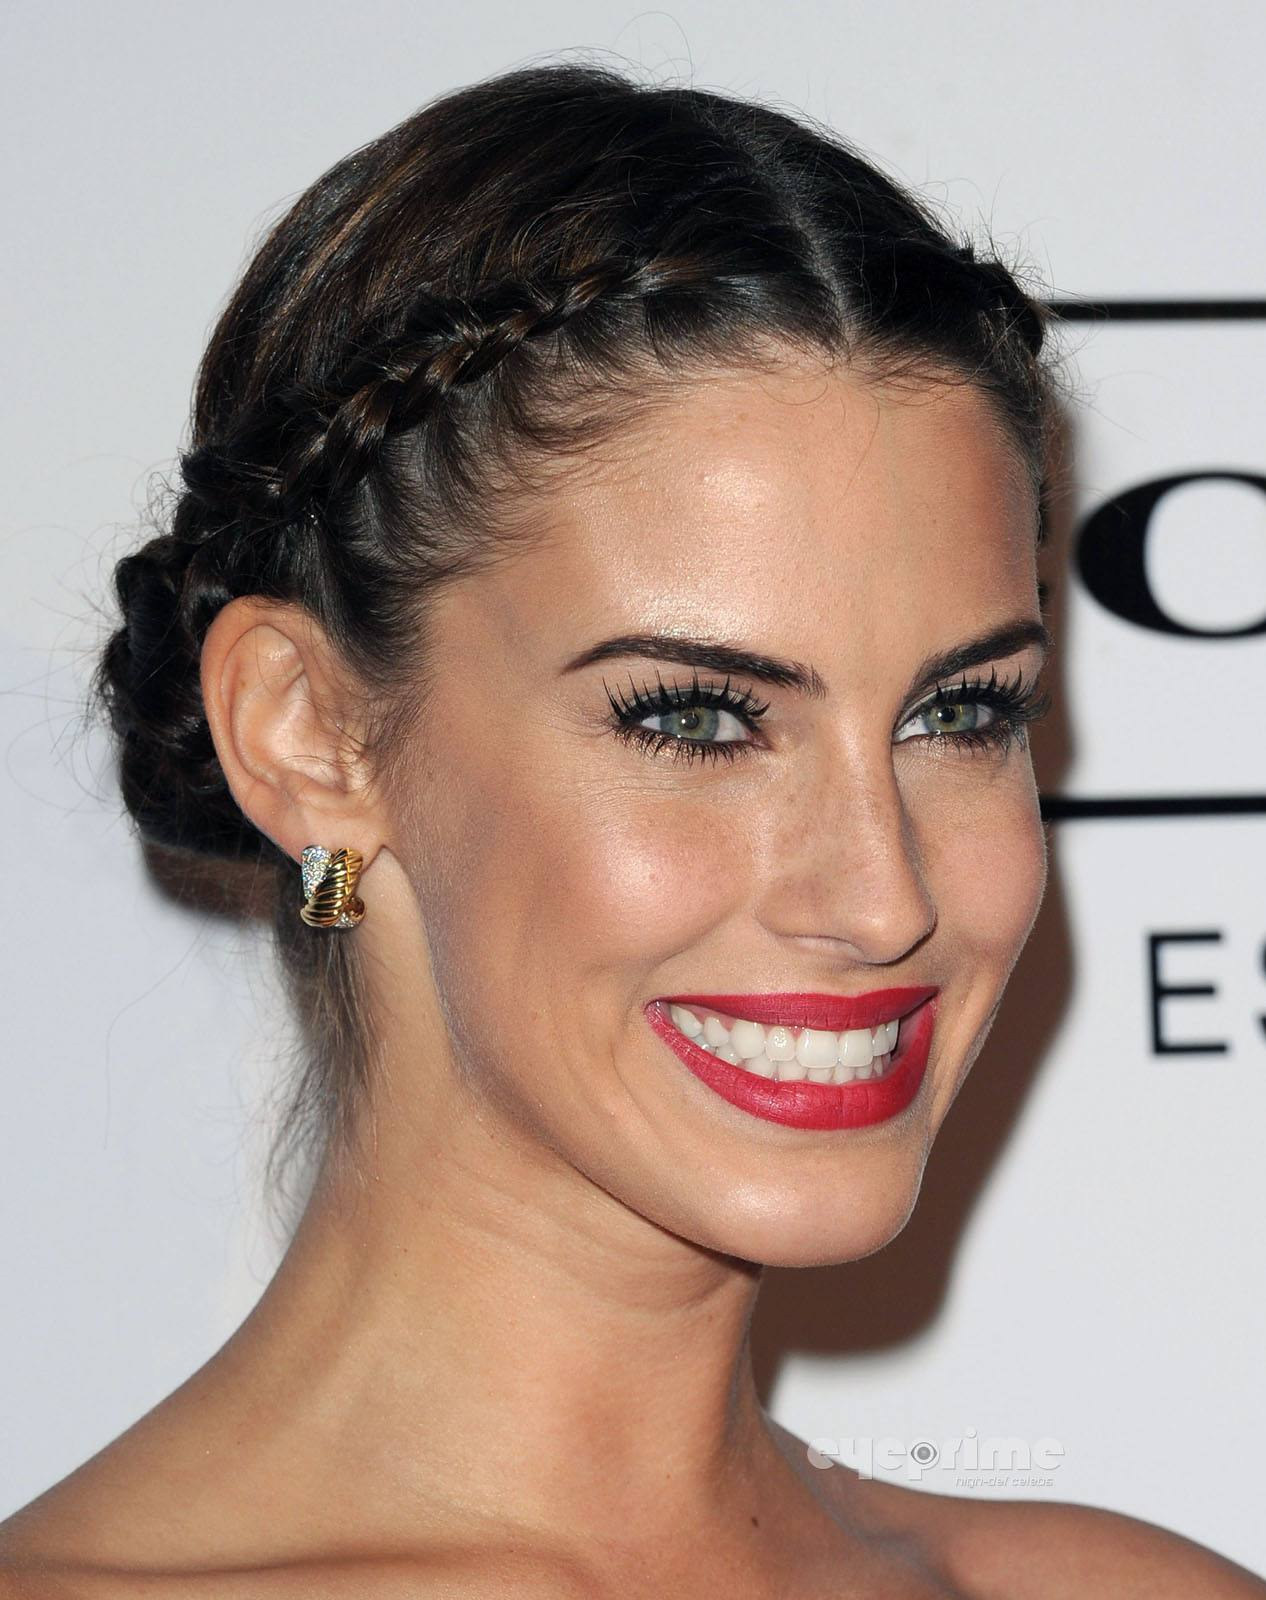 Jessica lowndes young